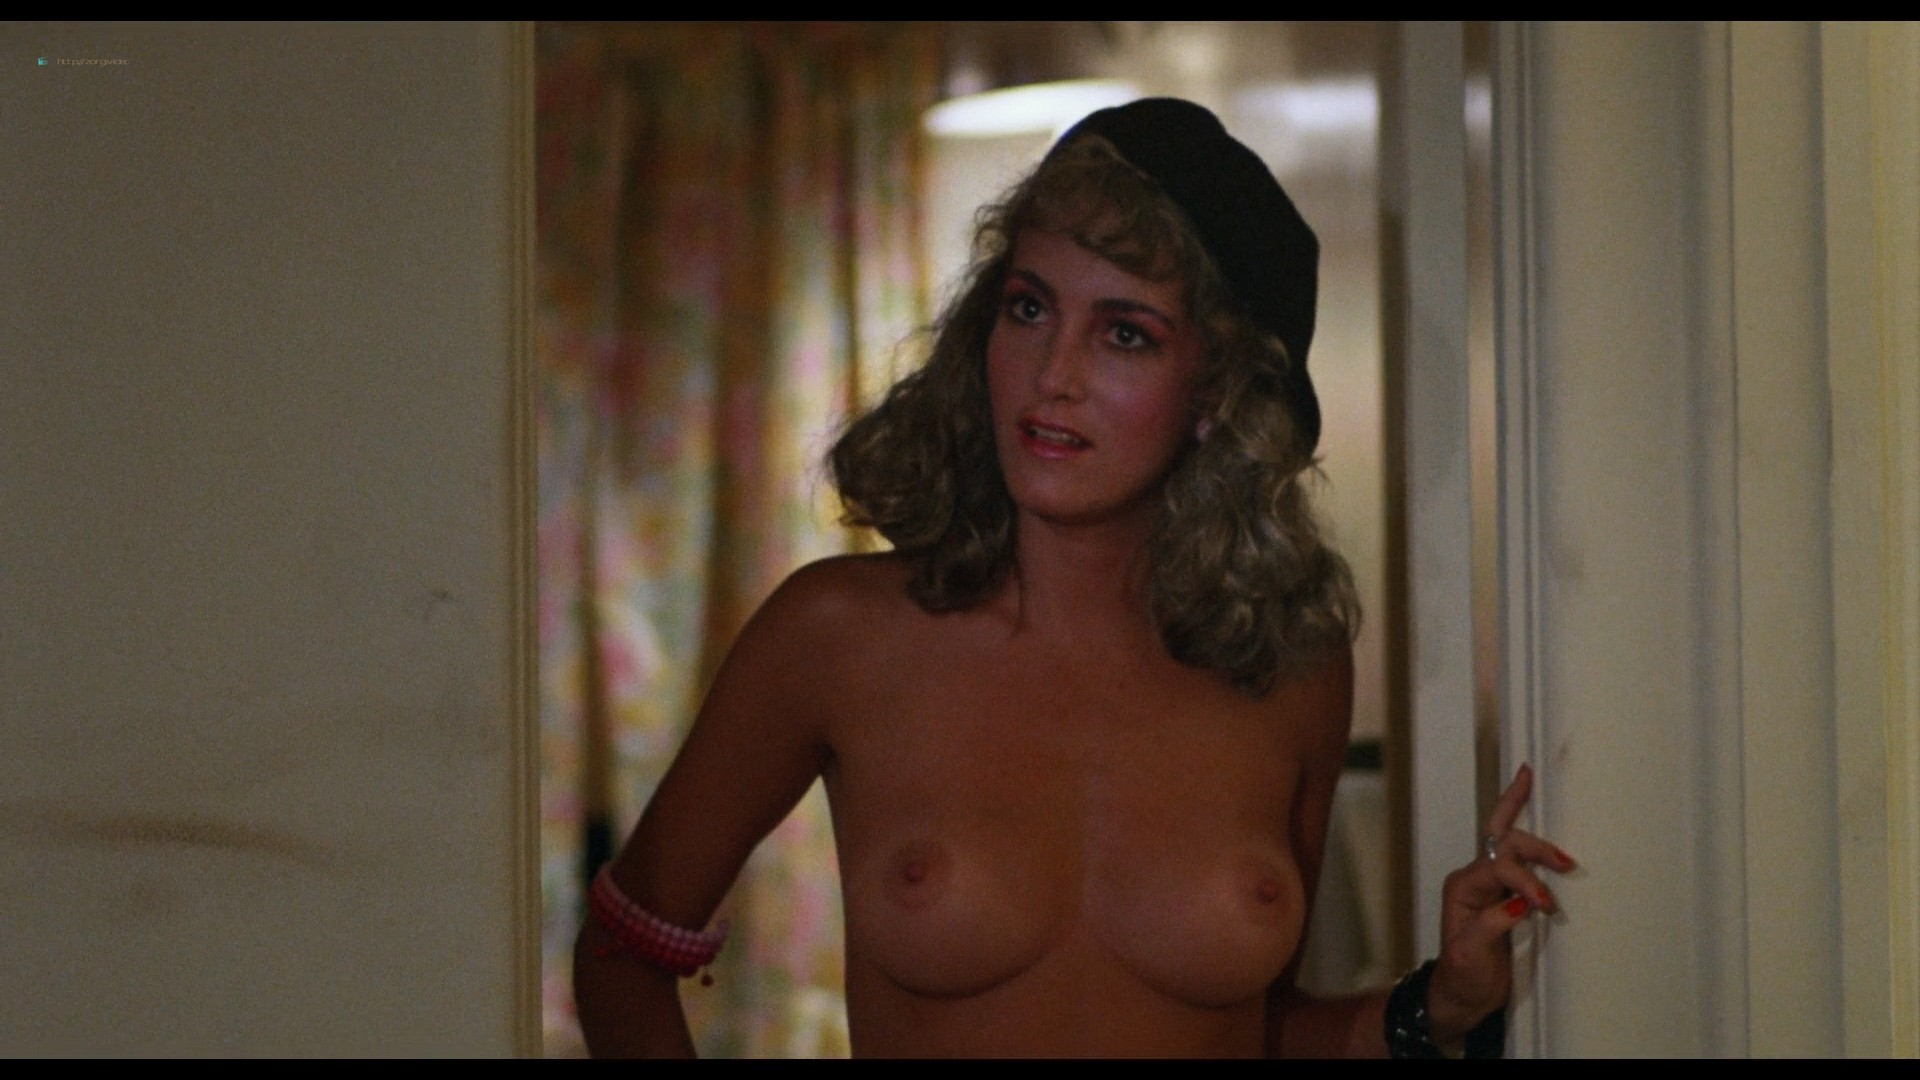 Graem McGavin nude Donna McDaniel and other's nude full frontal - Angel (1983) HD1080p BluRay (12)